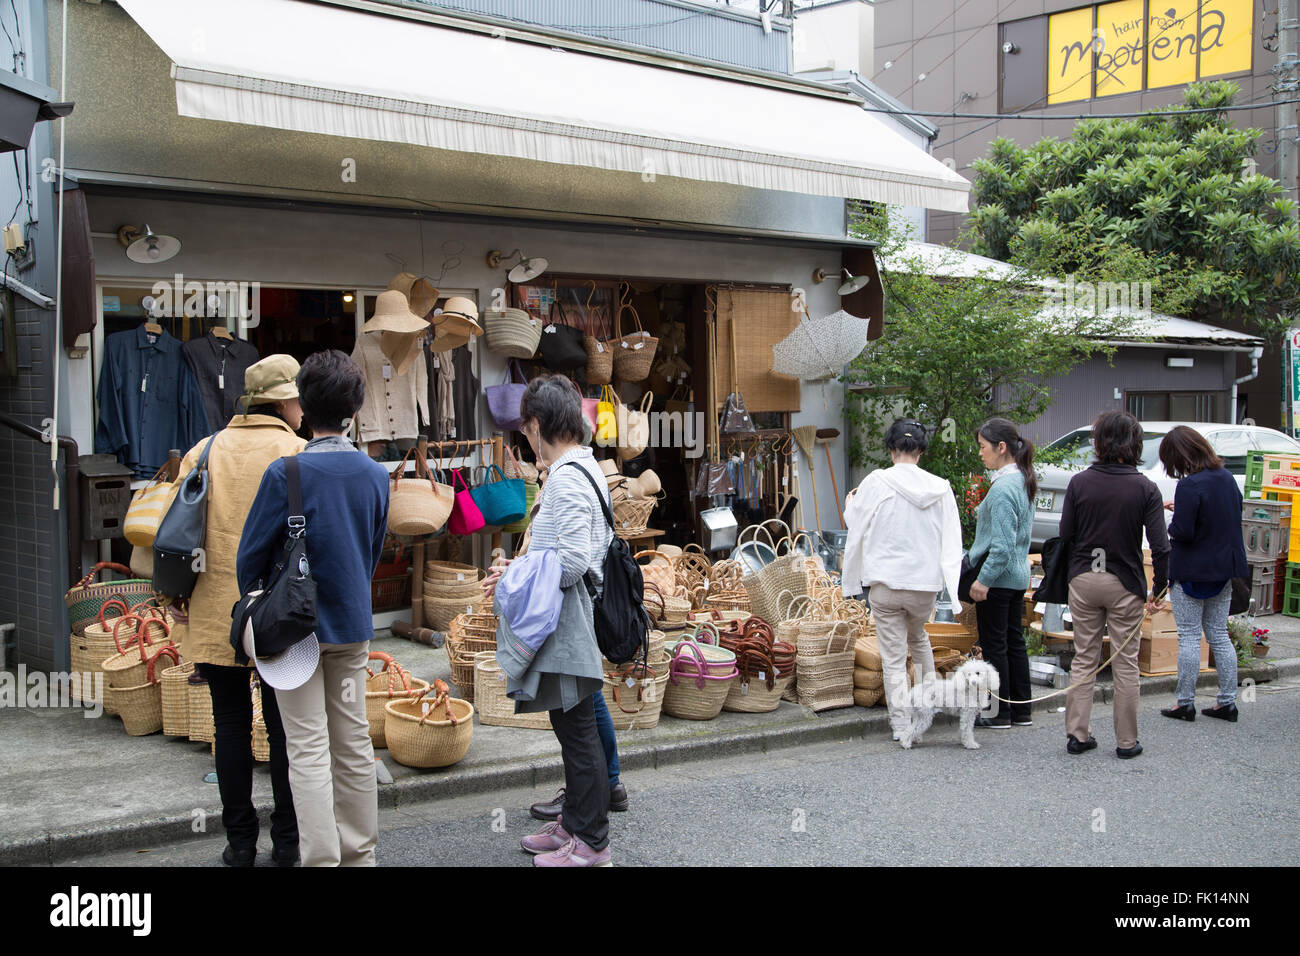 A crowd gathers outside a shop selling baskets in Yanaka Ginza, the historic section of Tokyo, Japan. Stock Photo